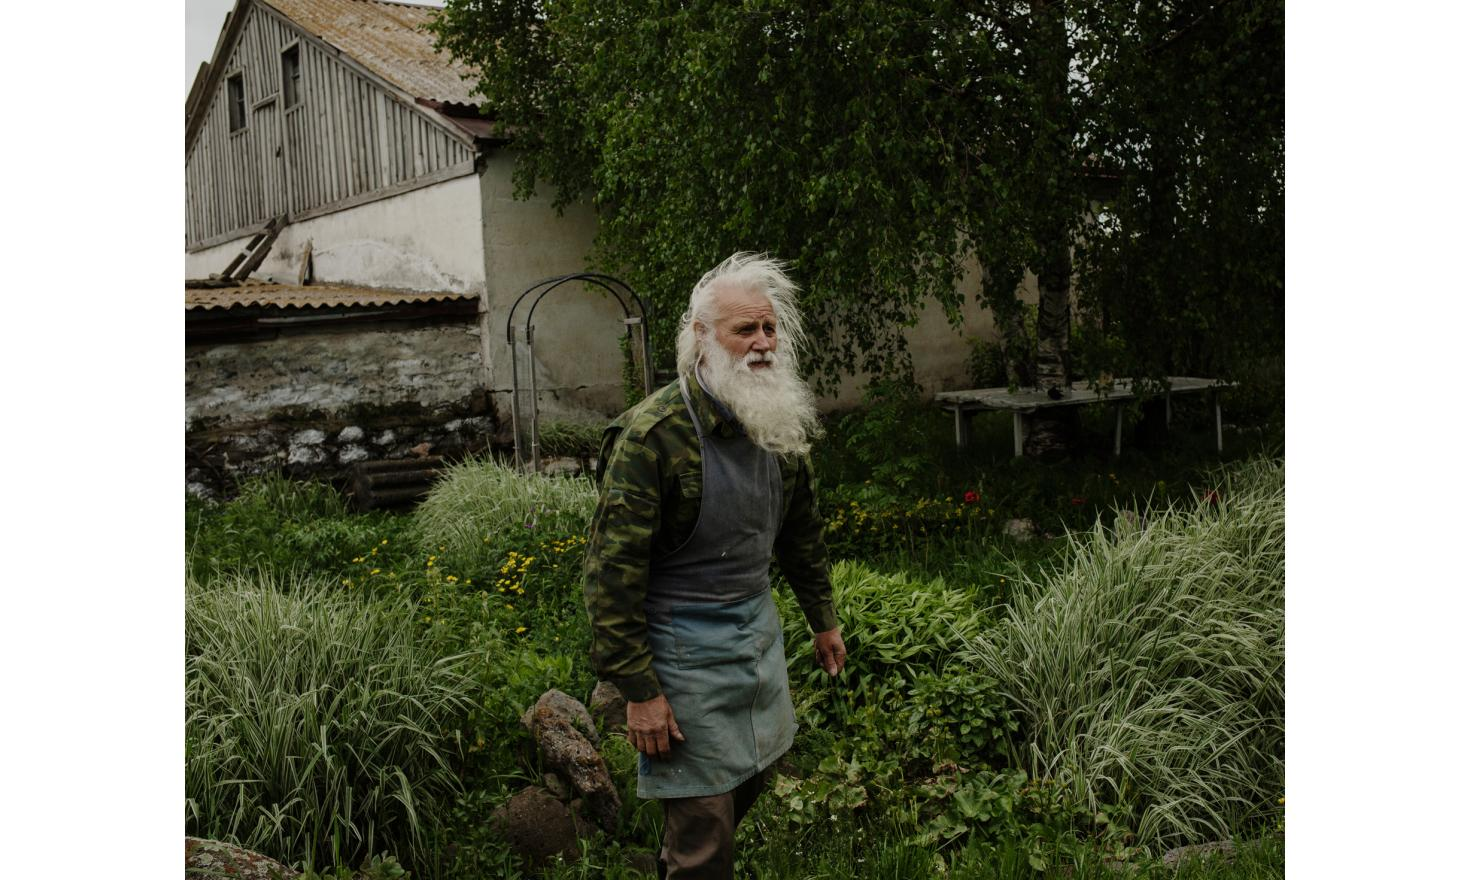 Nikolaï in the middle of his garden where he raises hundreds of different kind of herbs and flowers. He uses it for eating and traditional medicine. Doukhobors are know for their traditional way of life.